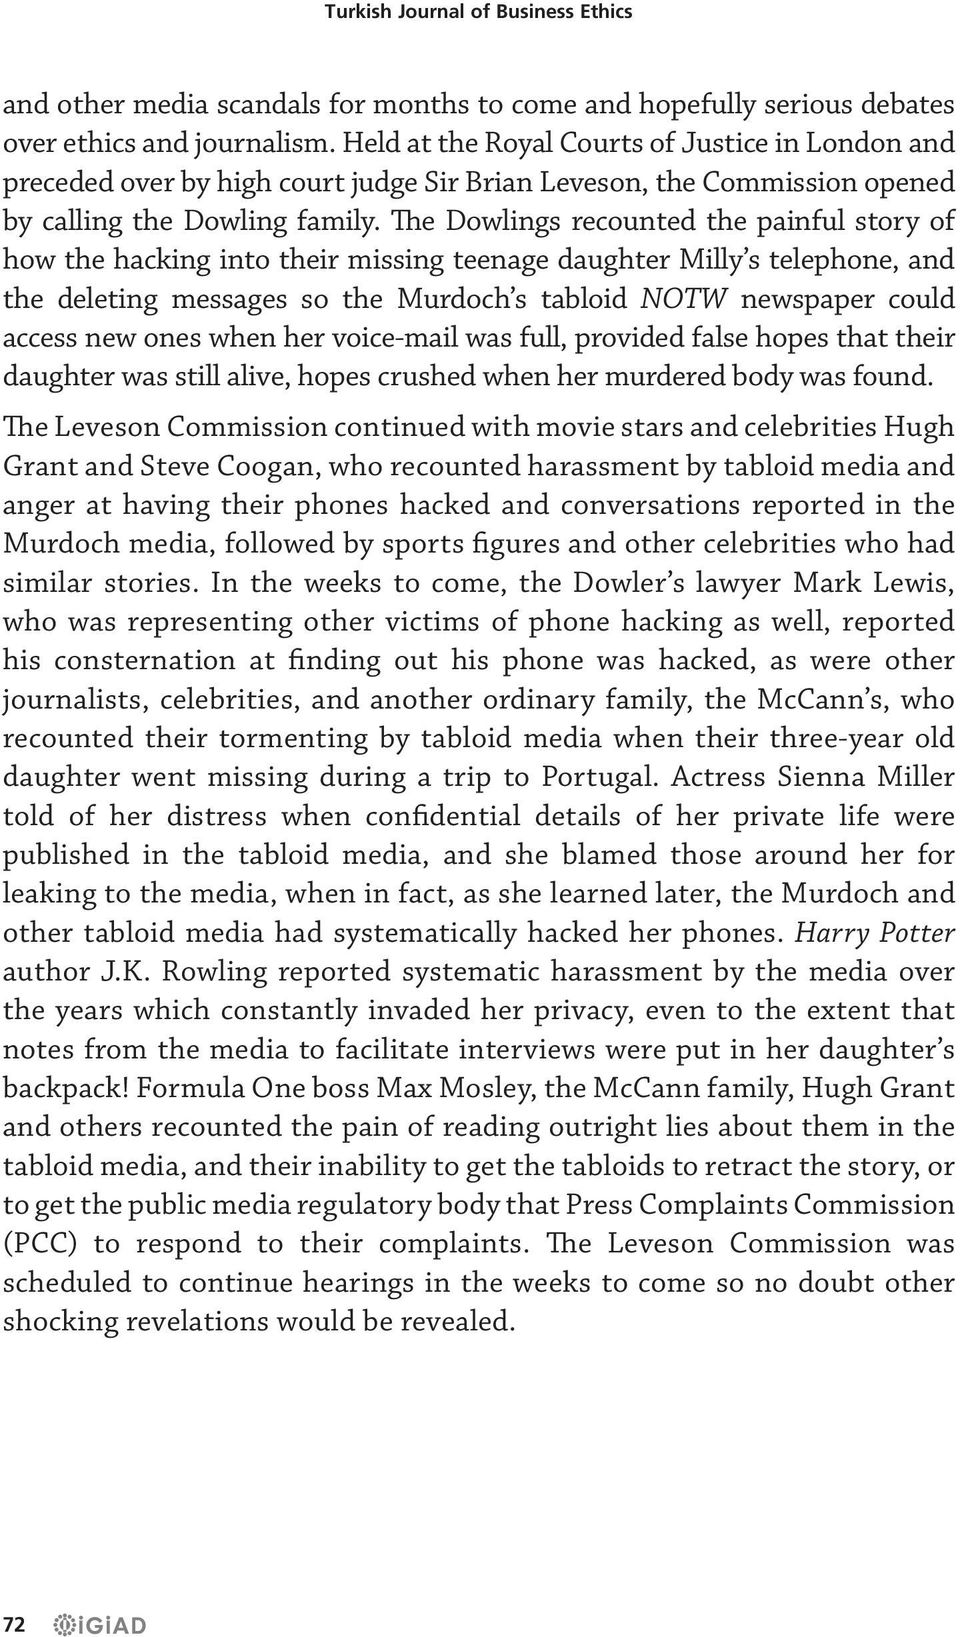 The Dowlings recounted the painful story of how the hacking into their missing teenage daughter Milly s telephone, and the deleting messages so the Murdoch s tabloid NOTW newspaper could access new